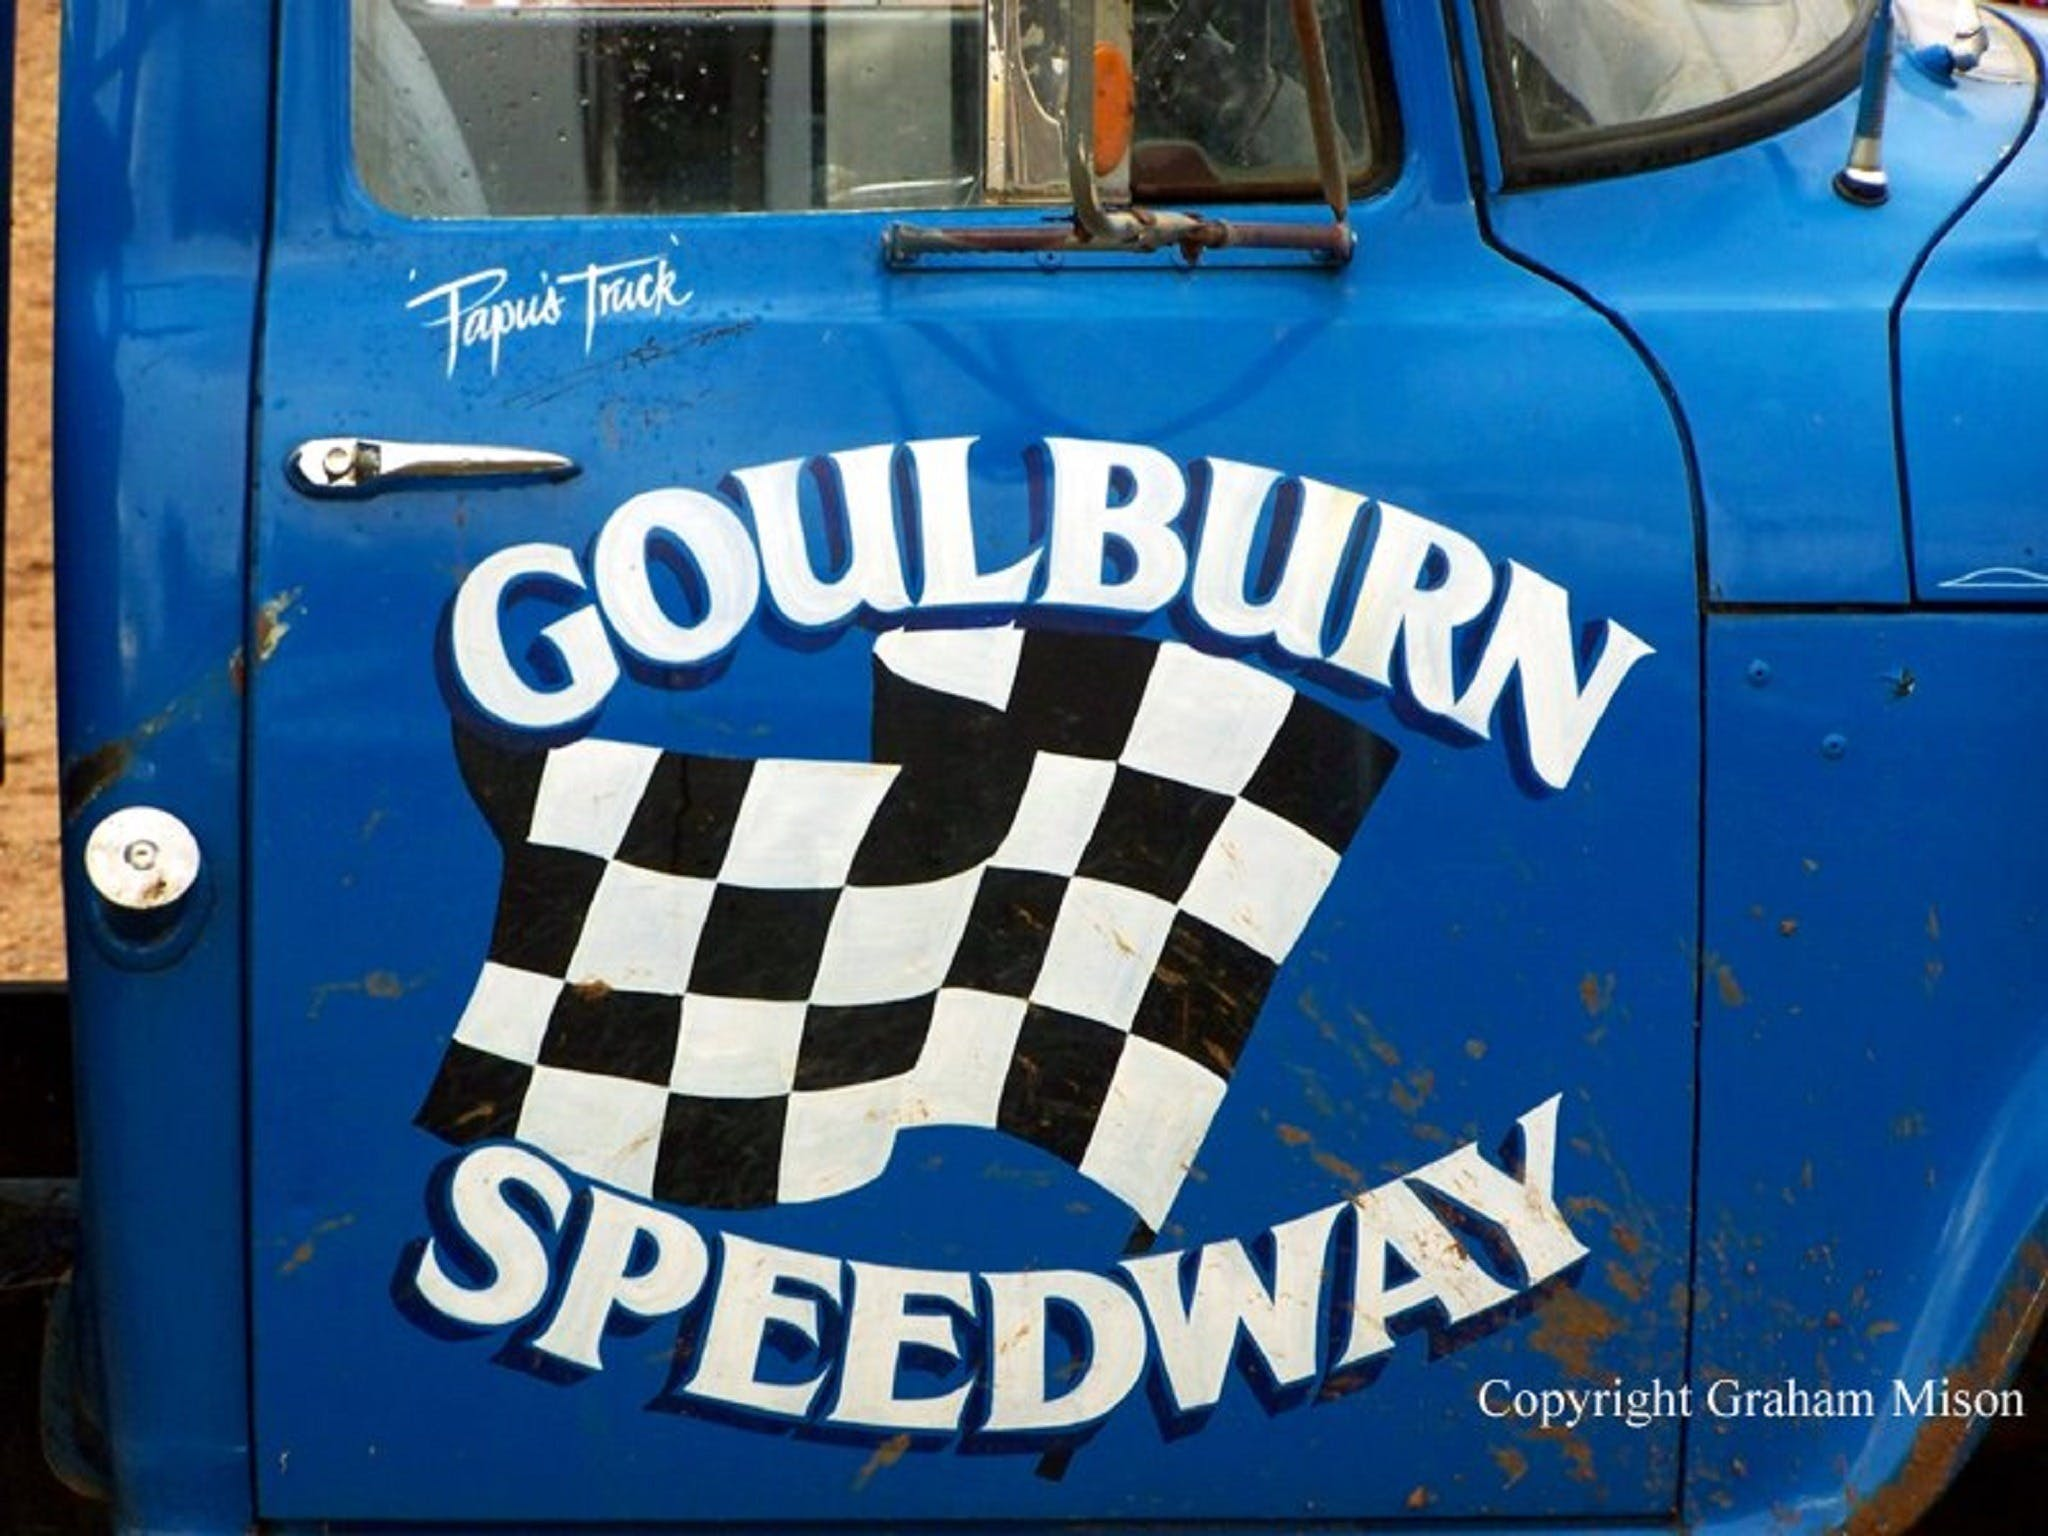 50 years of racing at Goulburn Speedway - Accommodation Ballina